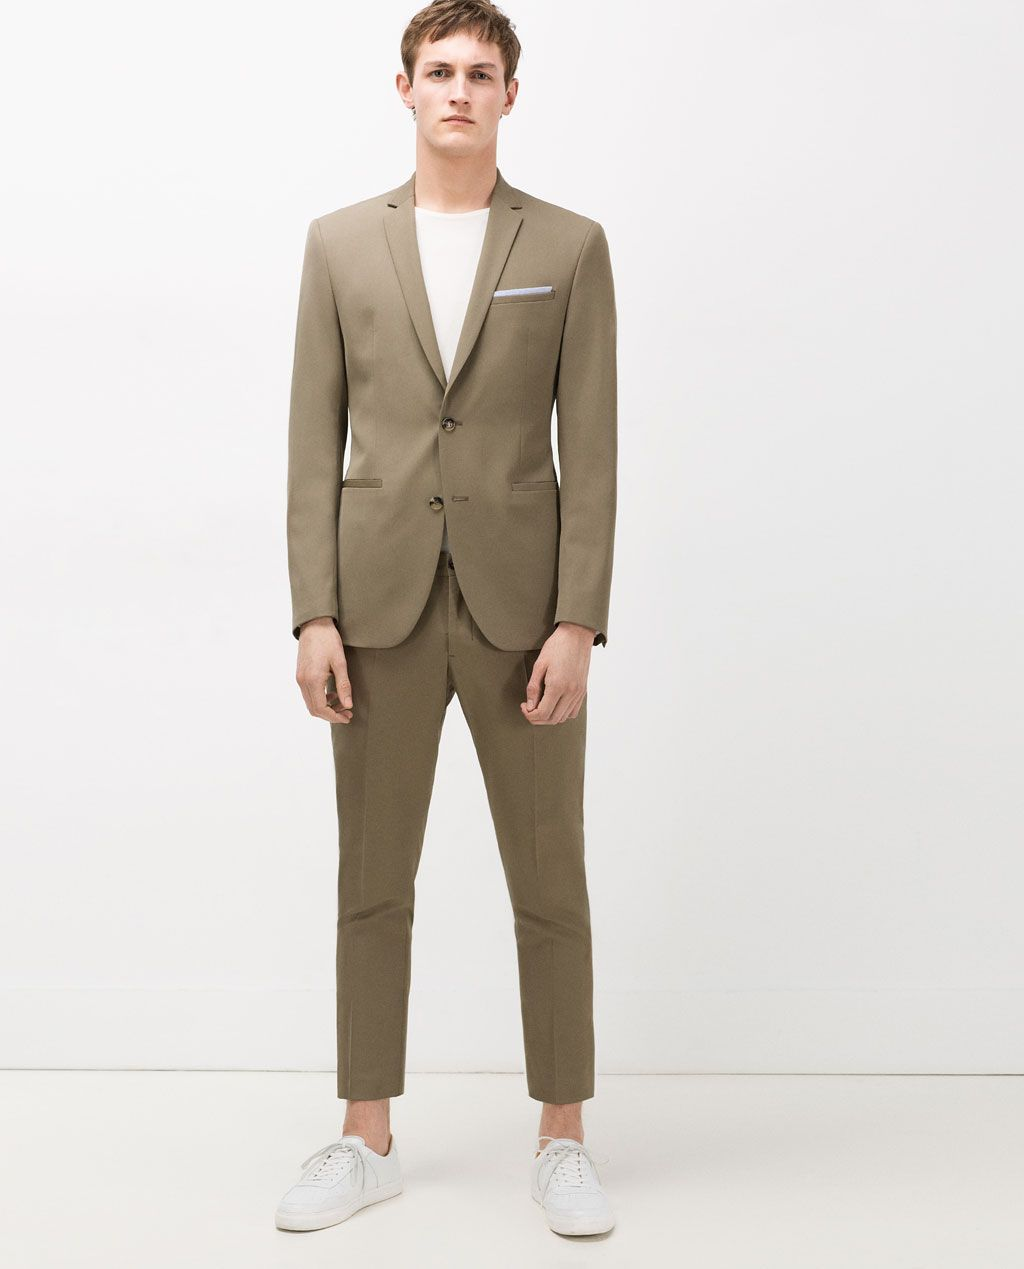 0ed8eed352ab5 Image 1 of KHAKI SUIT from Zara | Vestments in 2019 | Khaki suits ...